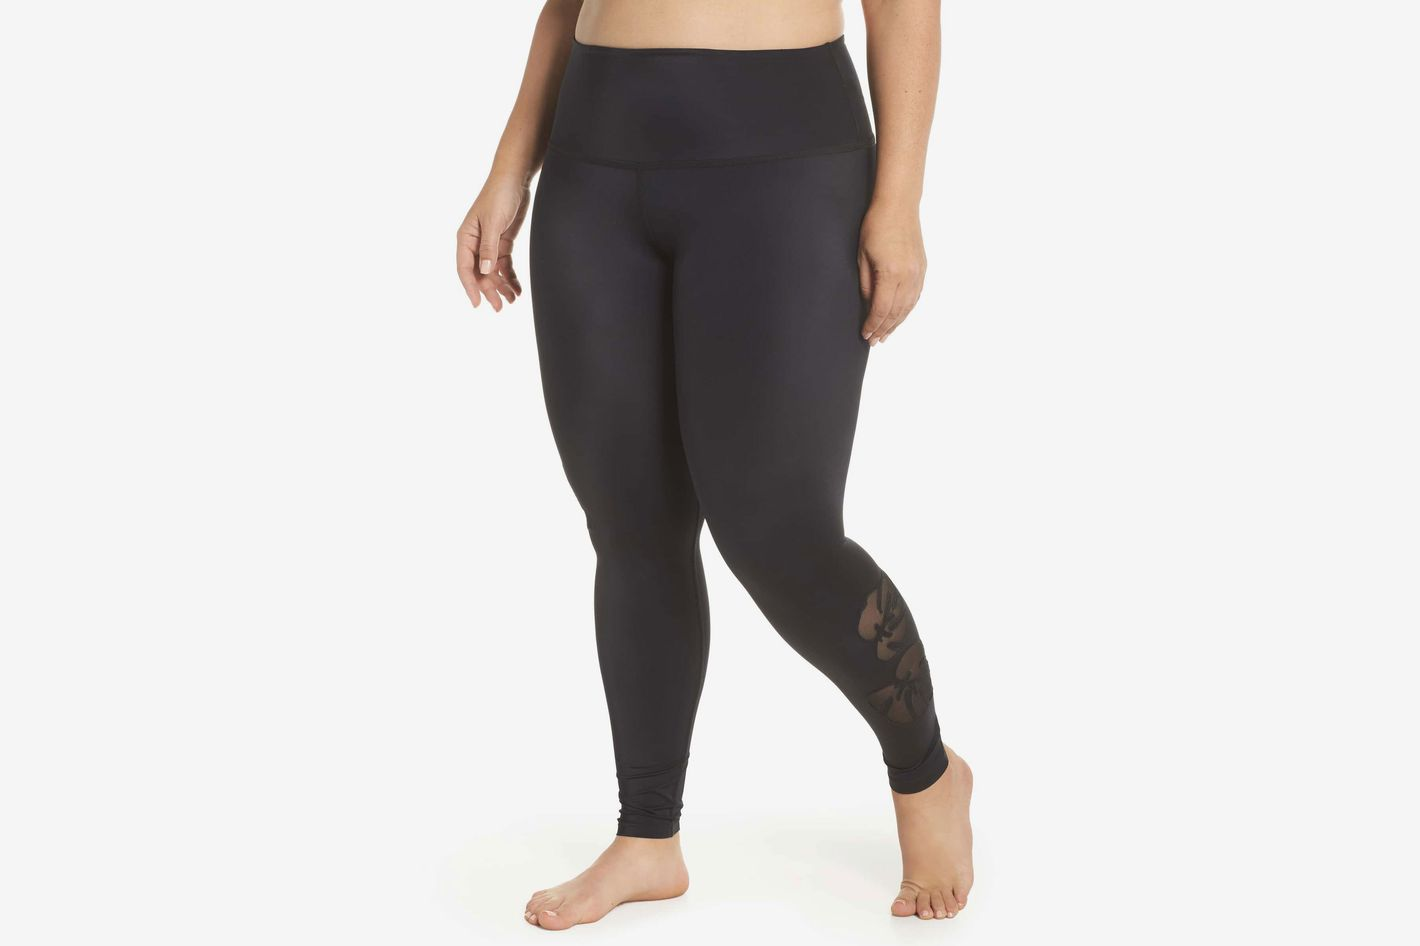 9 Best Yoga Pants for Women 2019